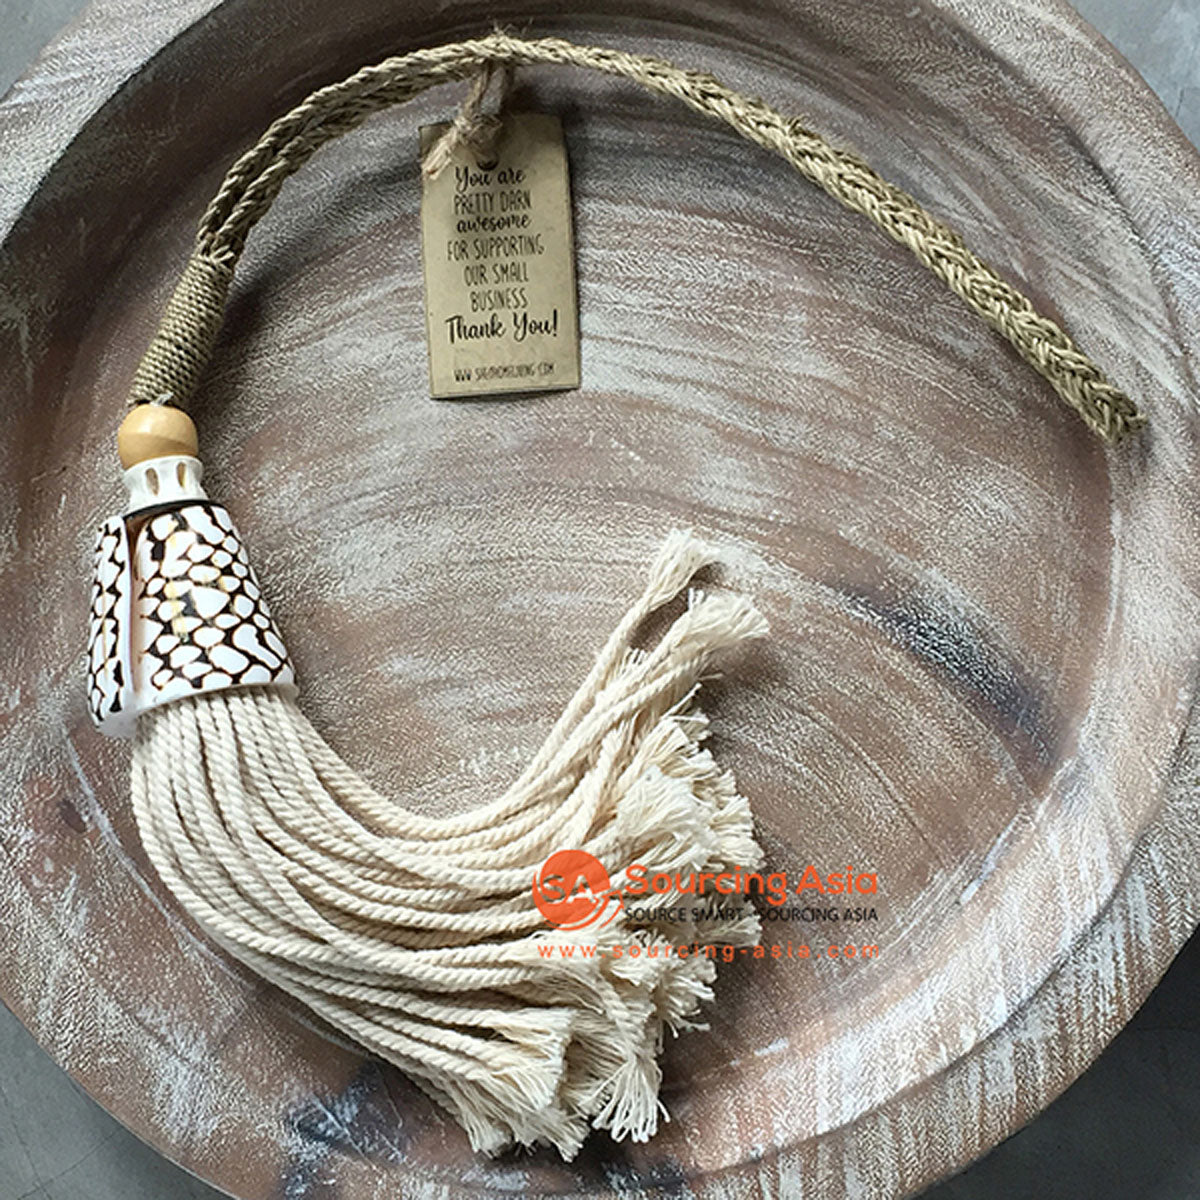 SHL047-8 NATURAL SHELL DECORATIVE TASSEL WITH MACRAME YARN